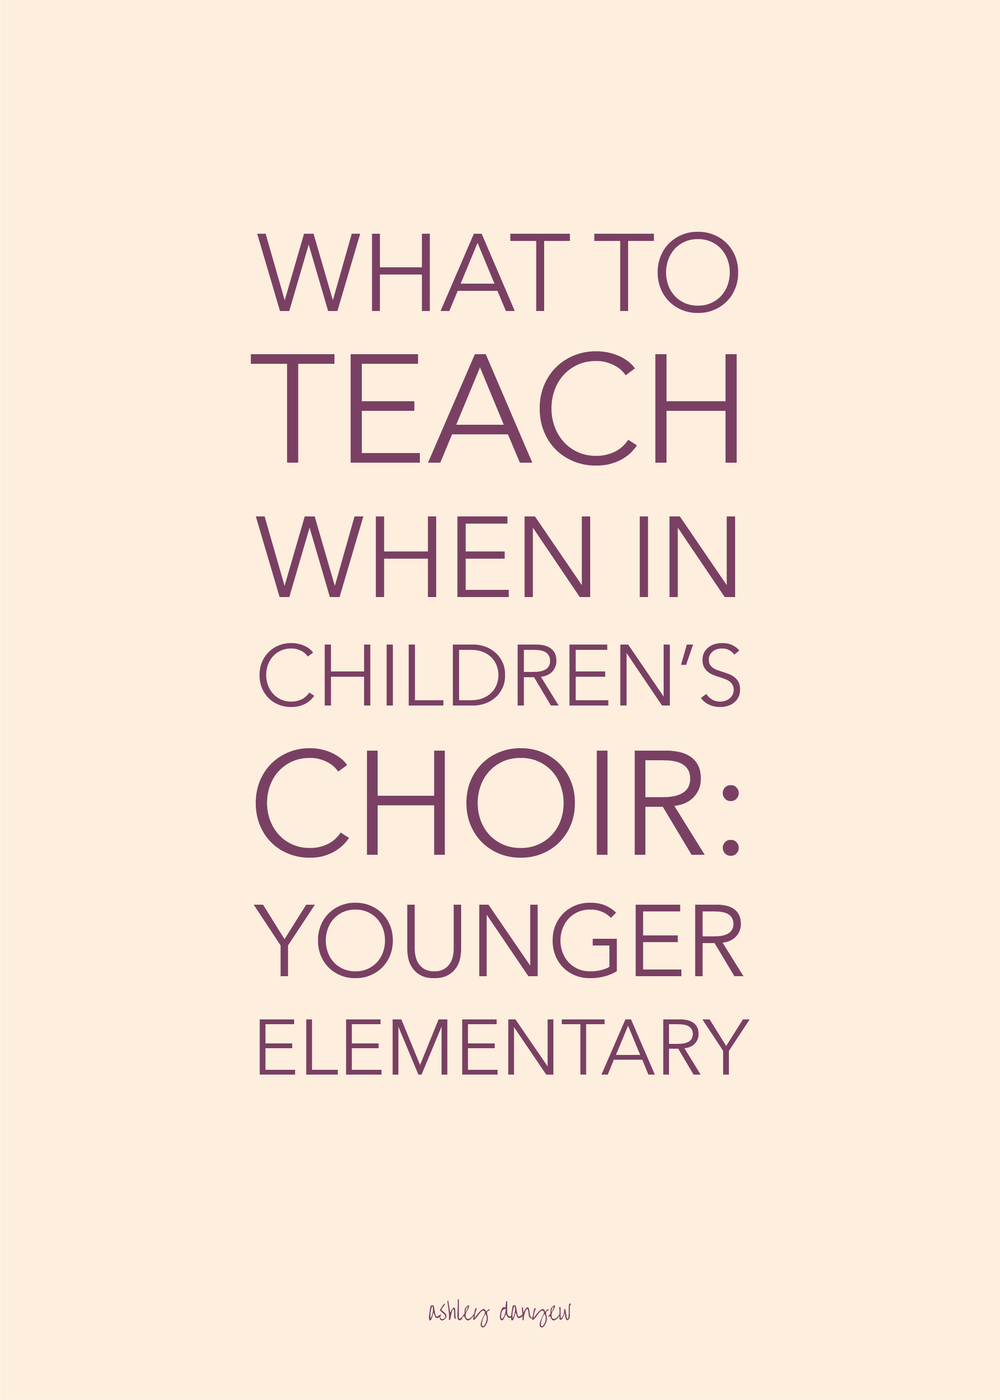 What to Teach When in Children's Choir - Younger Elementary-03.png